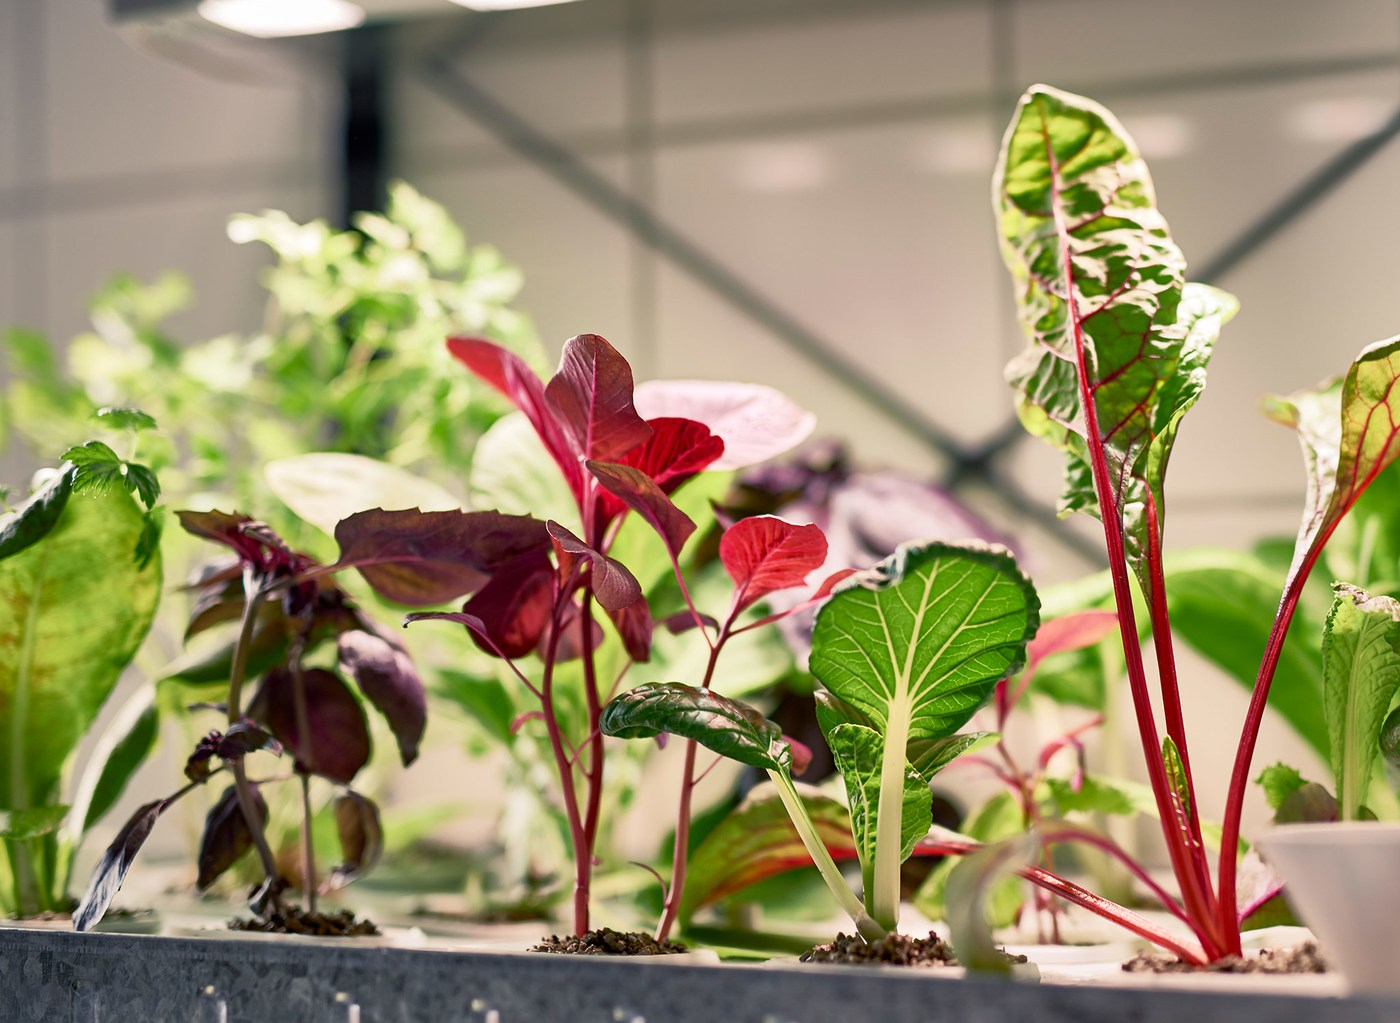 Herbs and lettuce growing in a hydroponics system.